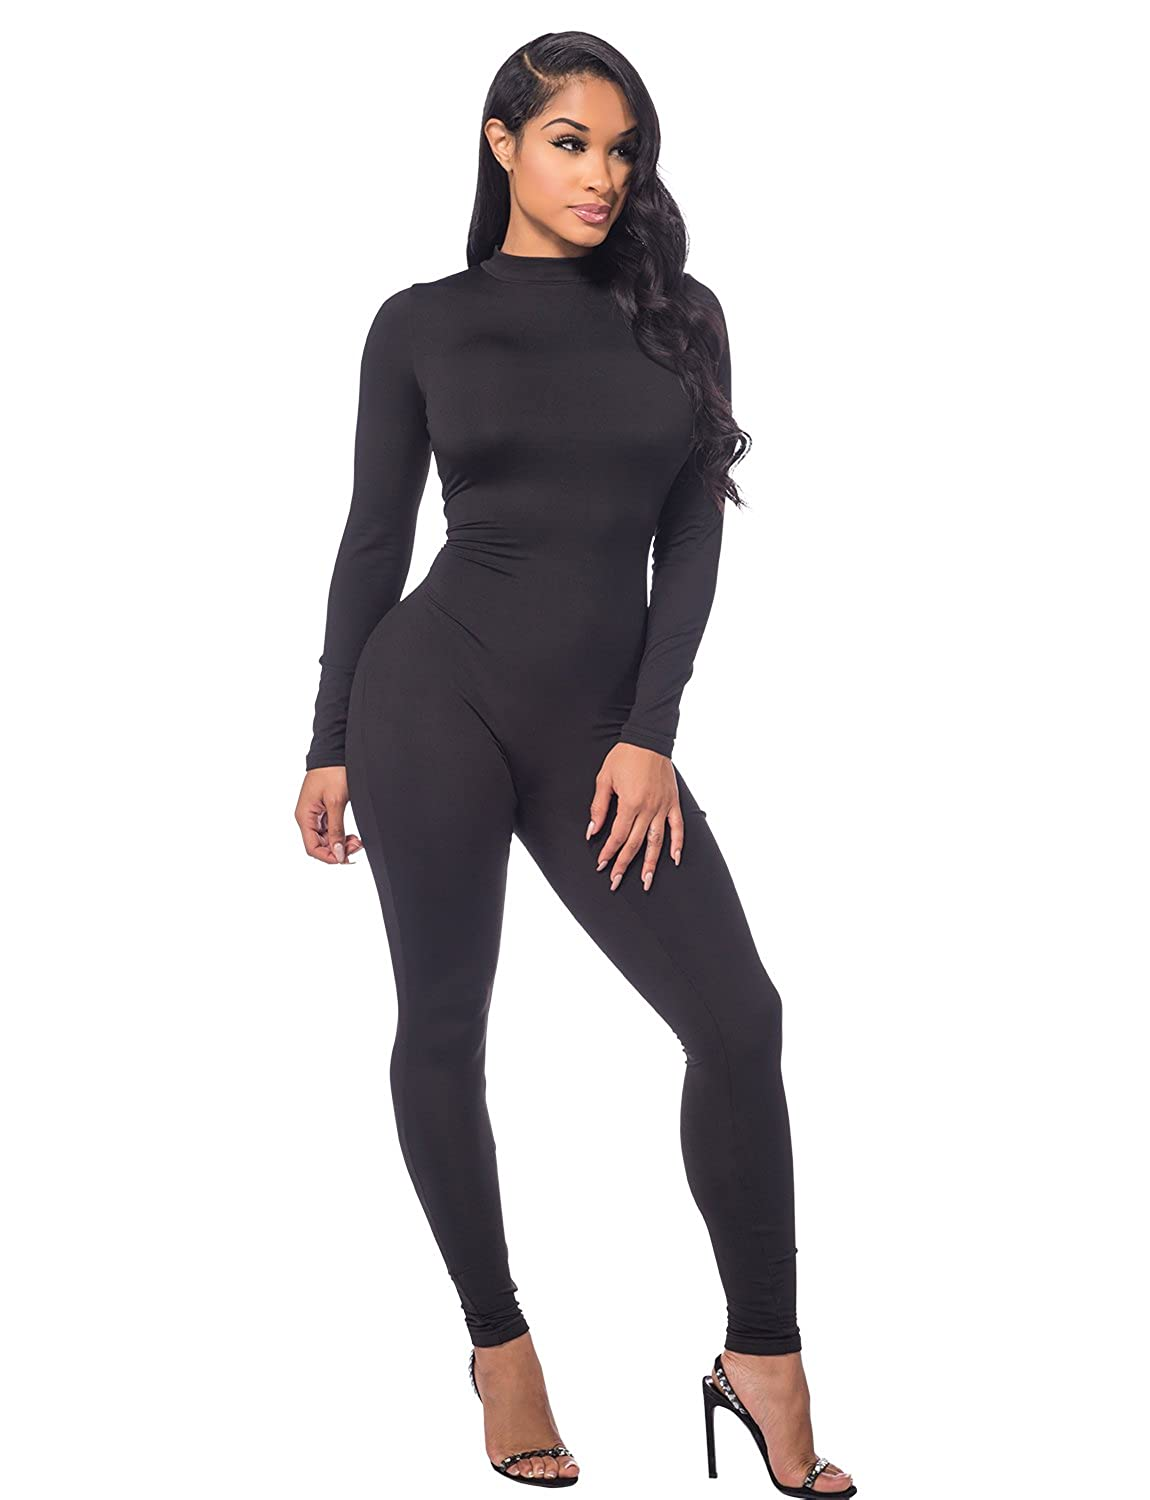 07e93350f008 Amazon.com: Sedrinuo Women Autumn Long Sleeve High Neck Bodycon Tight Full  Length Jumpsuits Rompers: Clothing